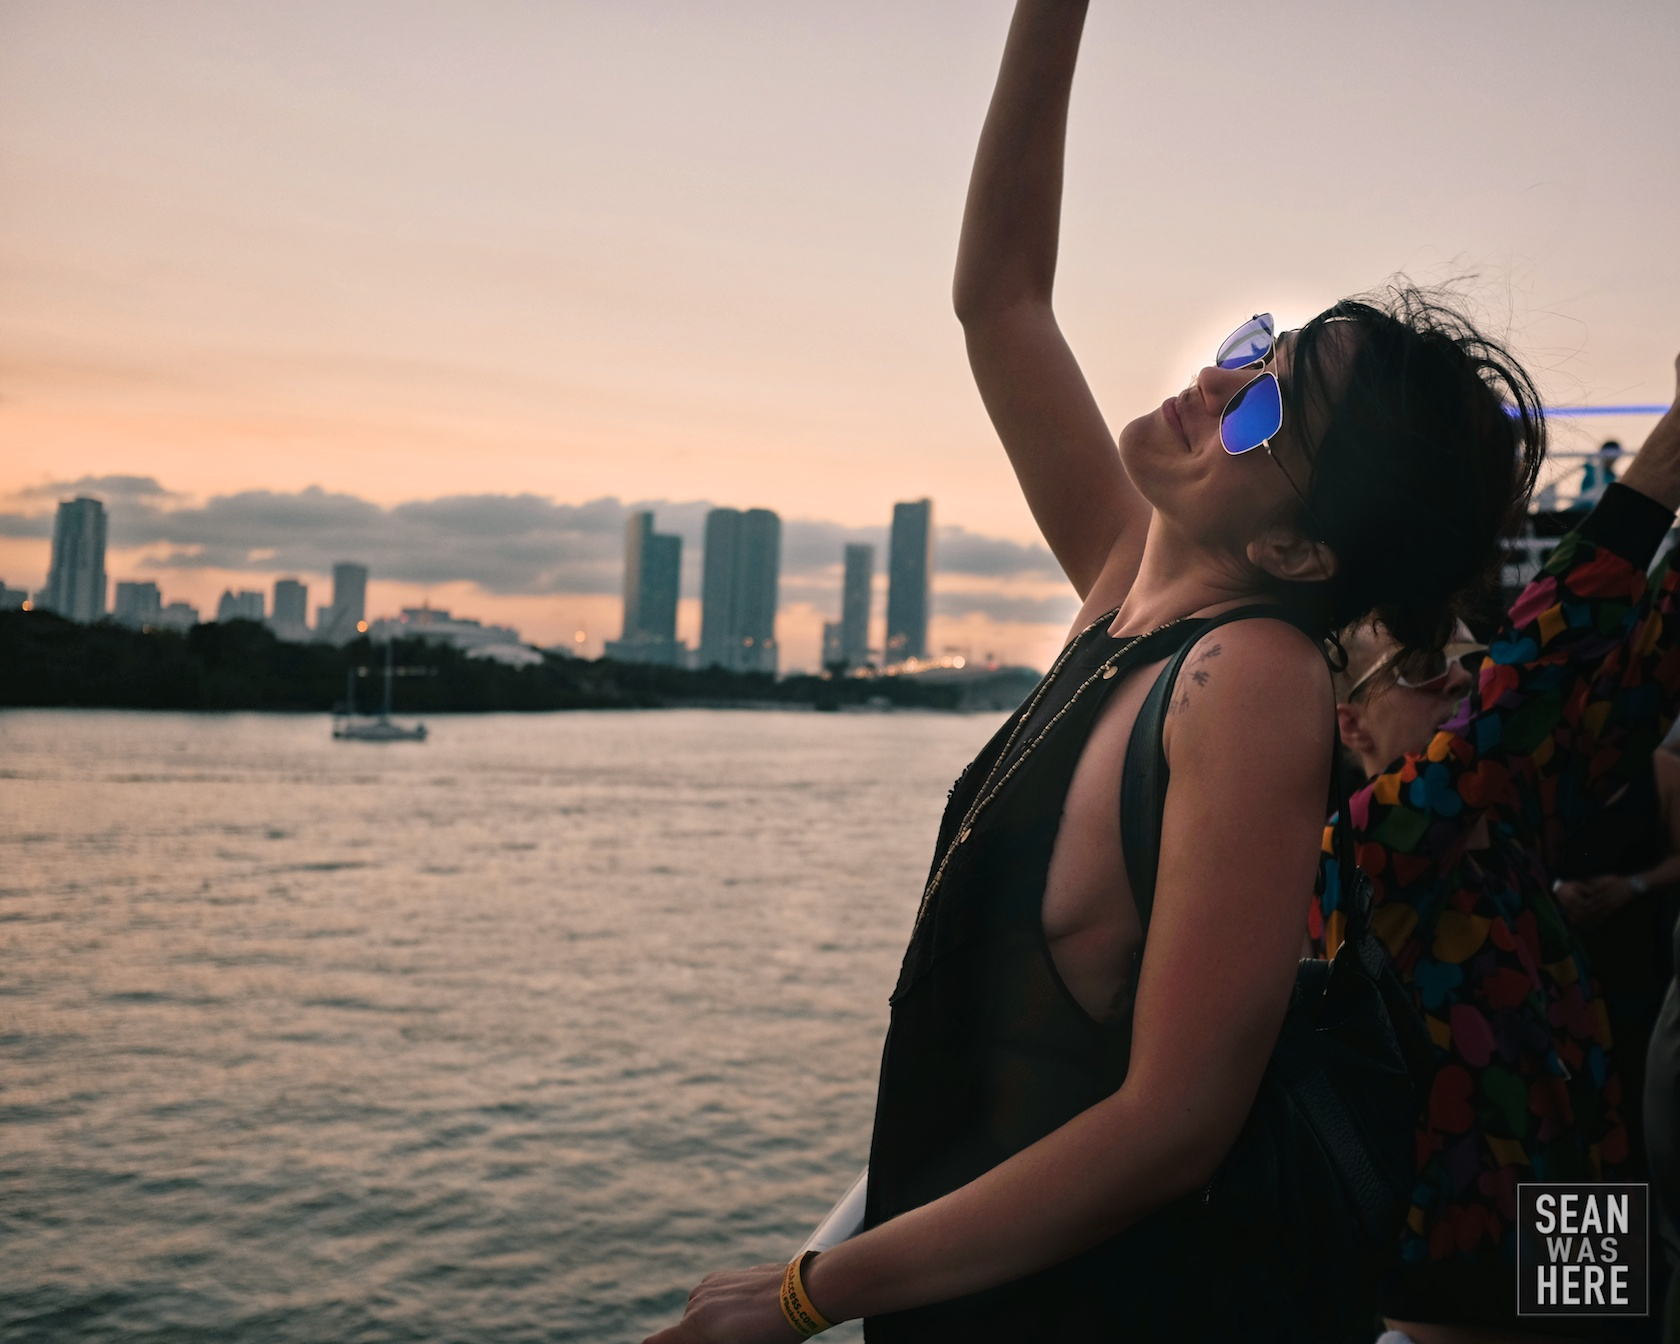 The best party - High Tide boat party the Sunday closing out Art Basel.